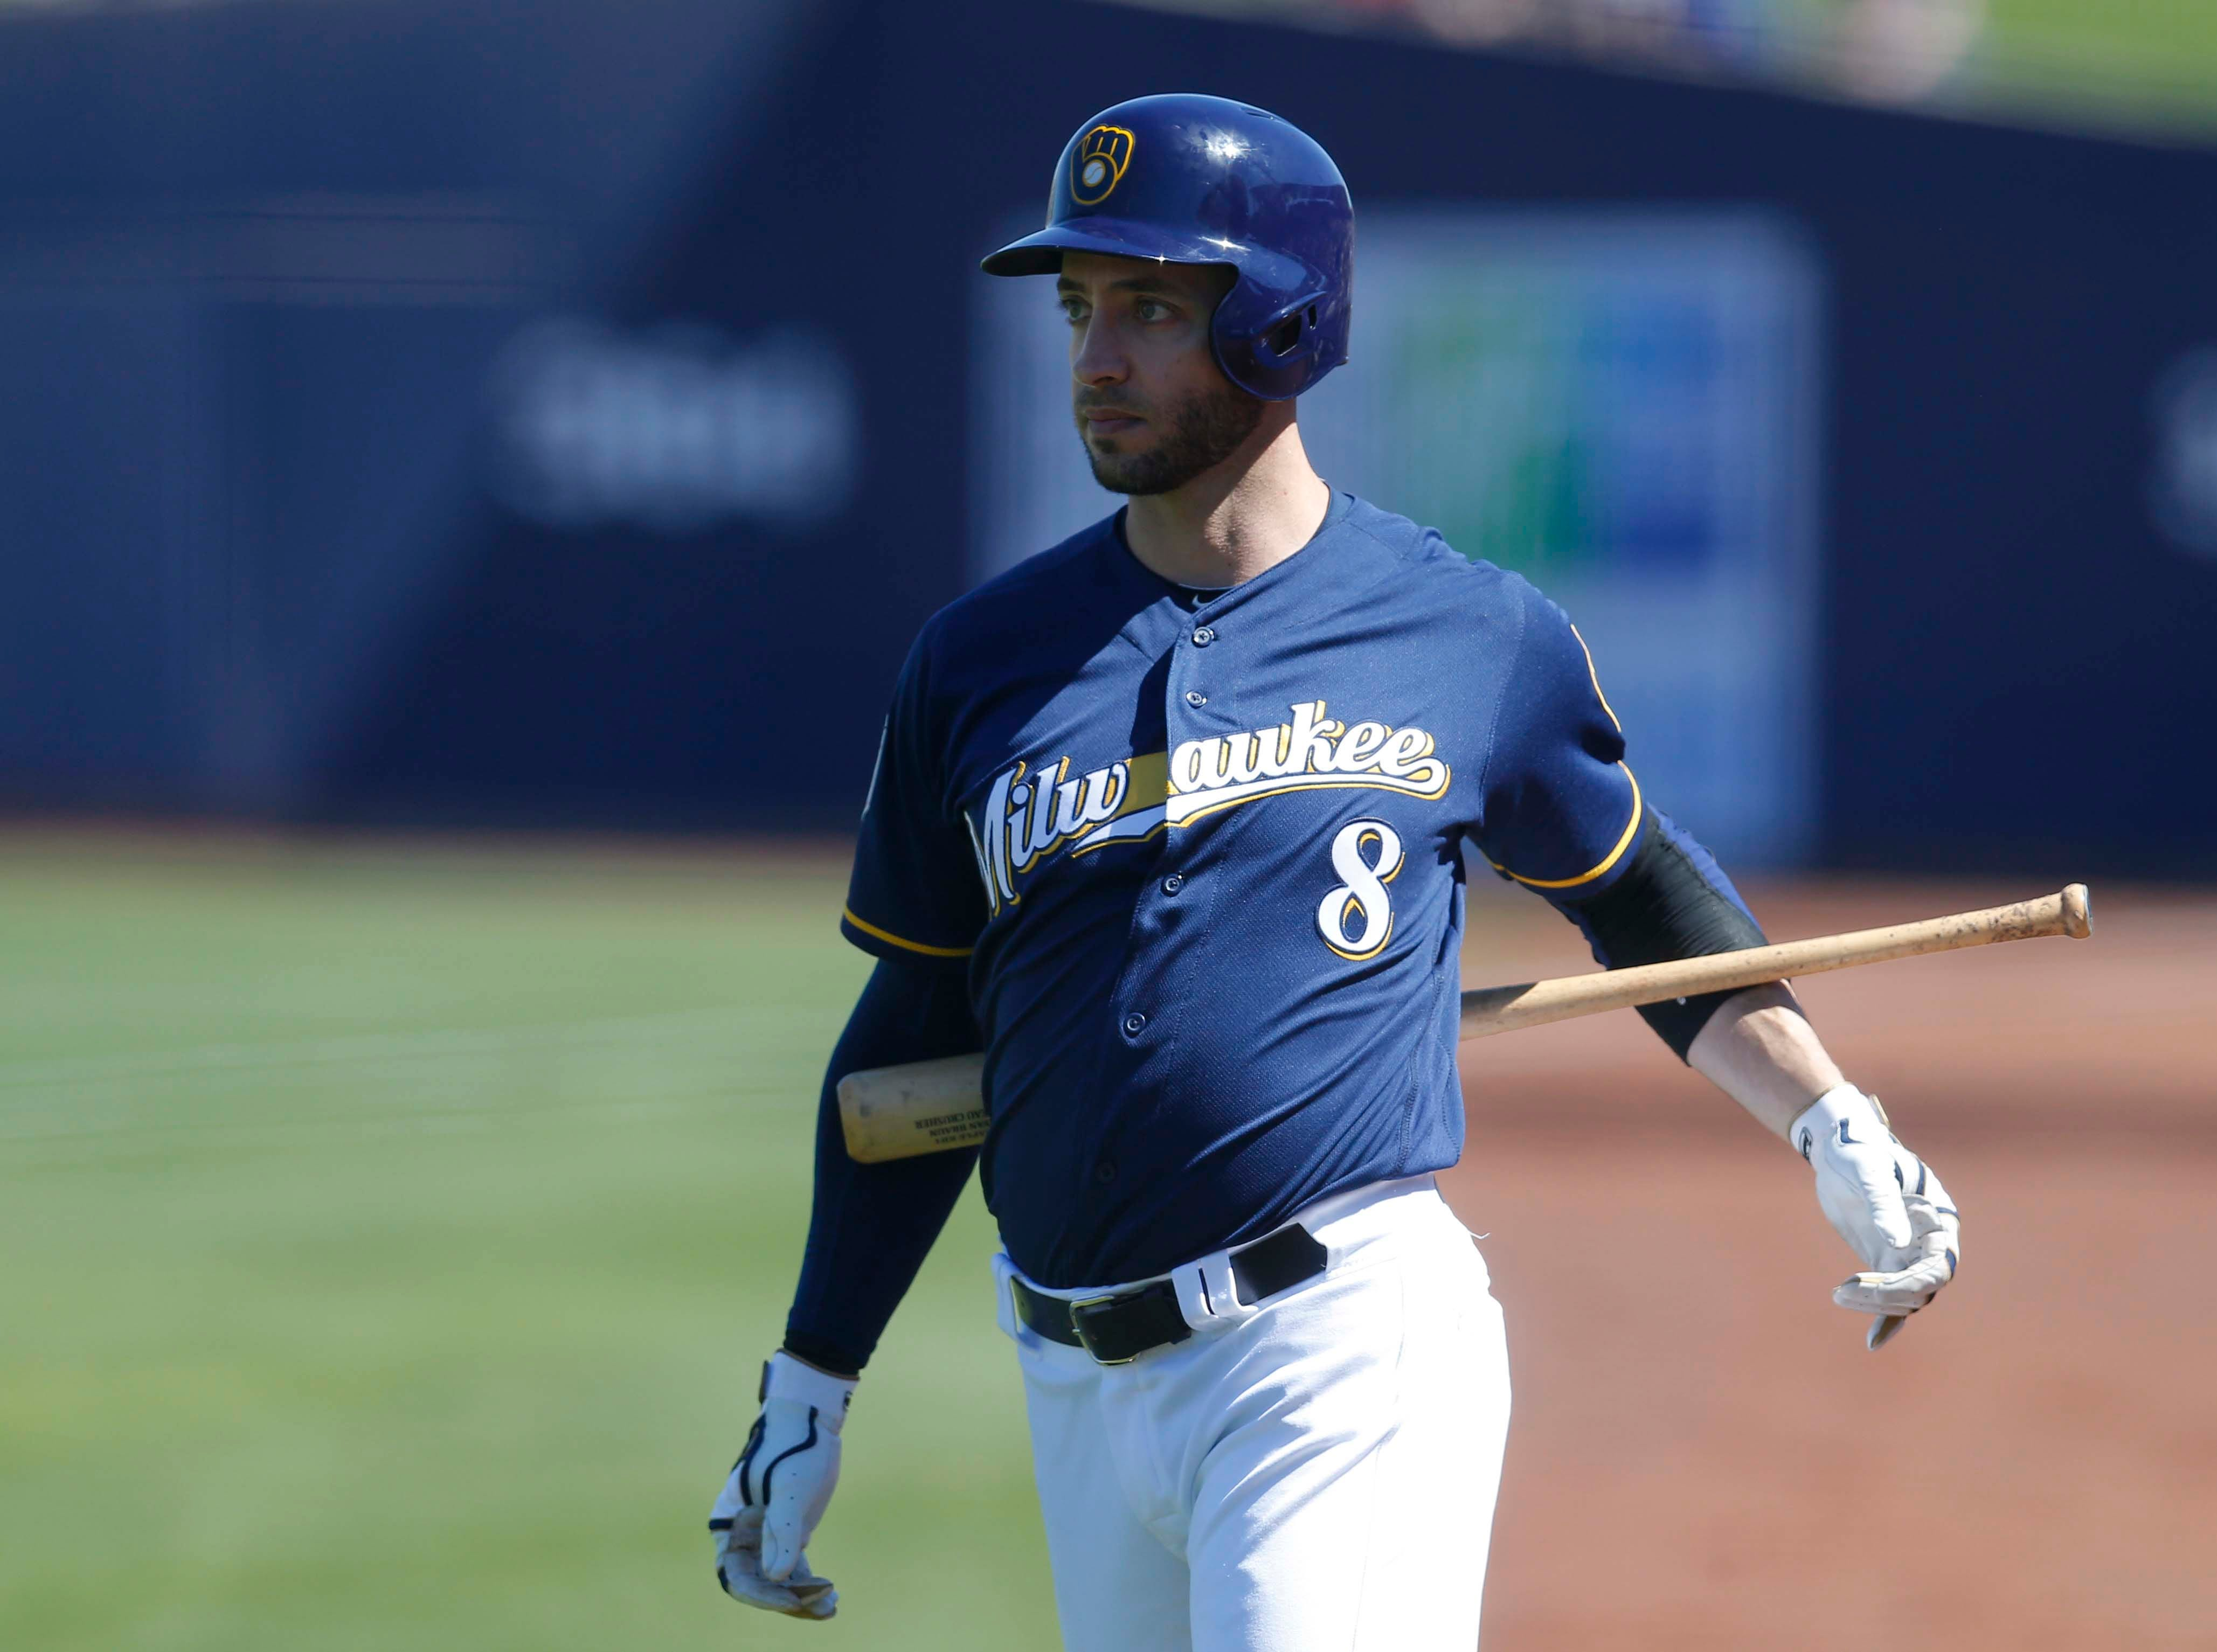 Twitter users not buying Ryan Braun's forgotten passport excuse for missing Montreal trip